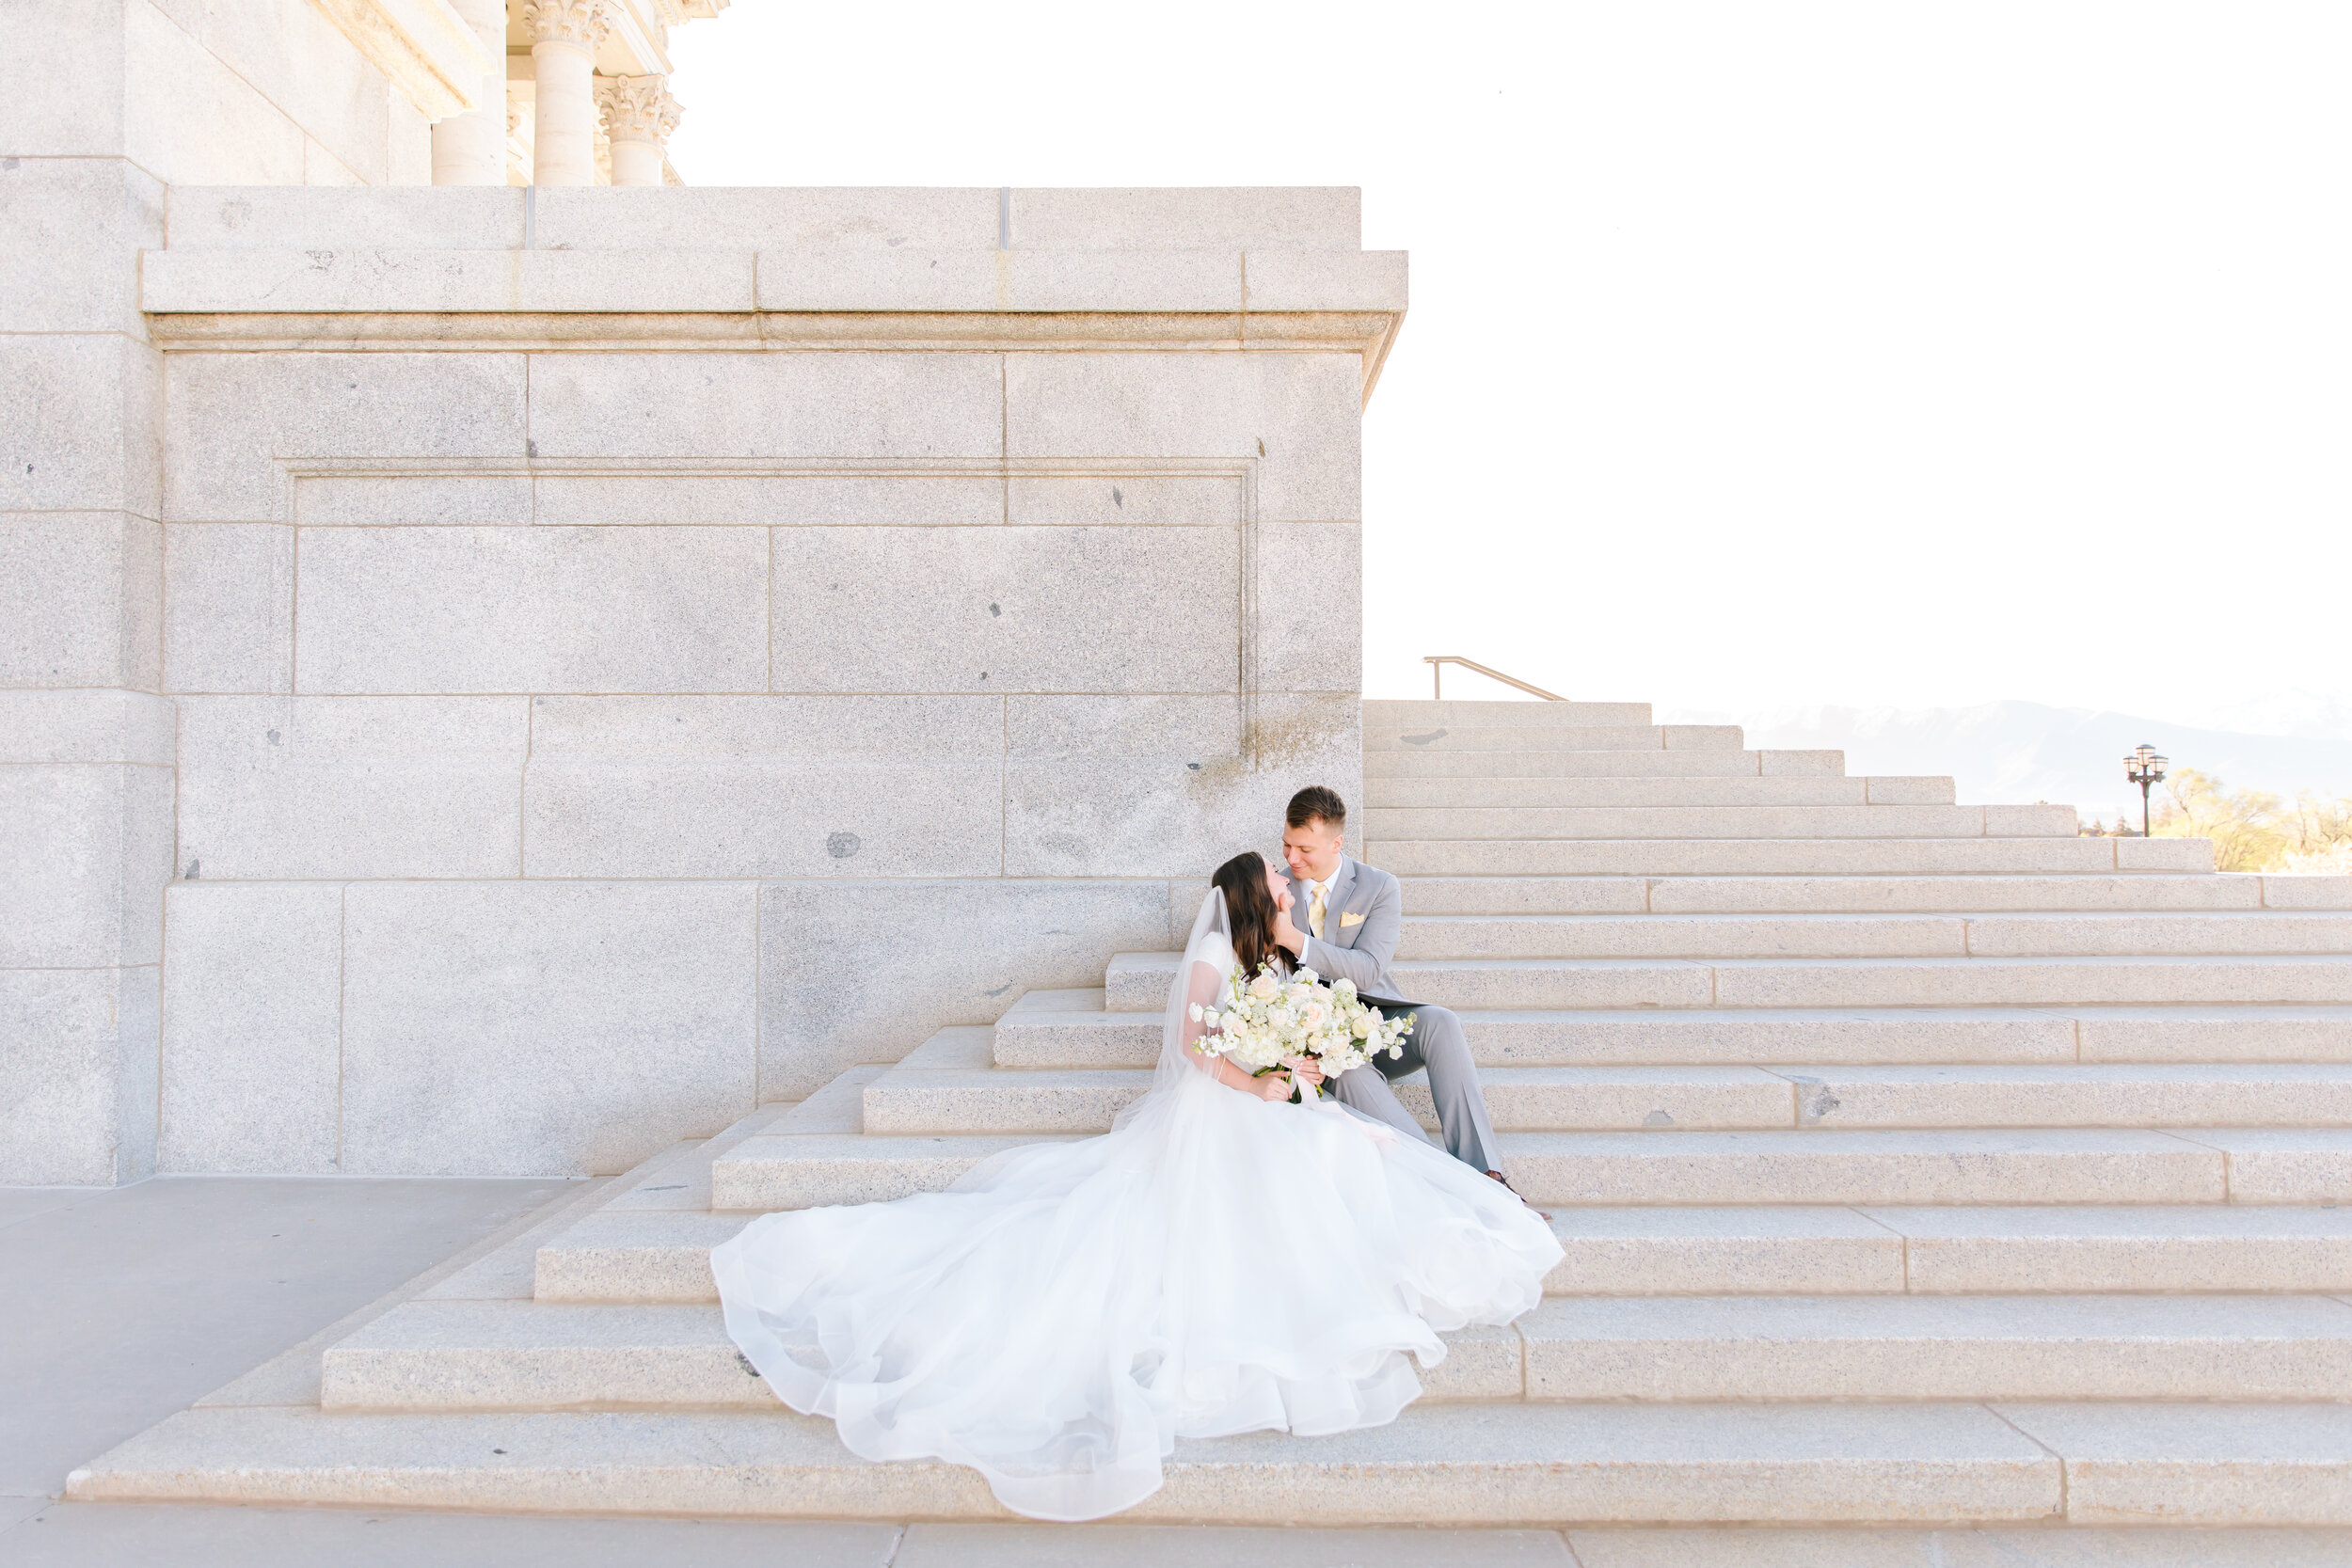 sitting on the steps couples pose inspiration looking into each others eyes couple goals formal wedding photo shoot session white granite steps salt lake city capital building bi wedding dress skirt wedding dress inspiration love the dress mens wedding tux inspiration wedding attire #formals #saltlakecity #capitalbuilding #lovebirds #couplegoals #bridal #weddinginspo #wedding #professional #photographer